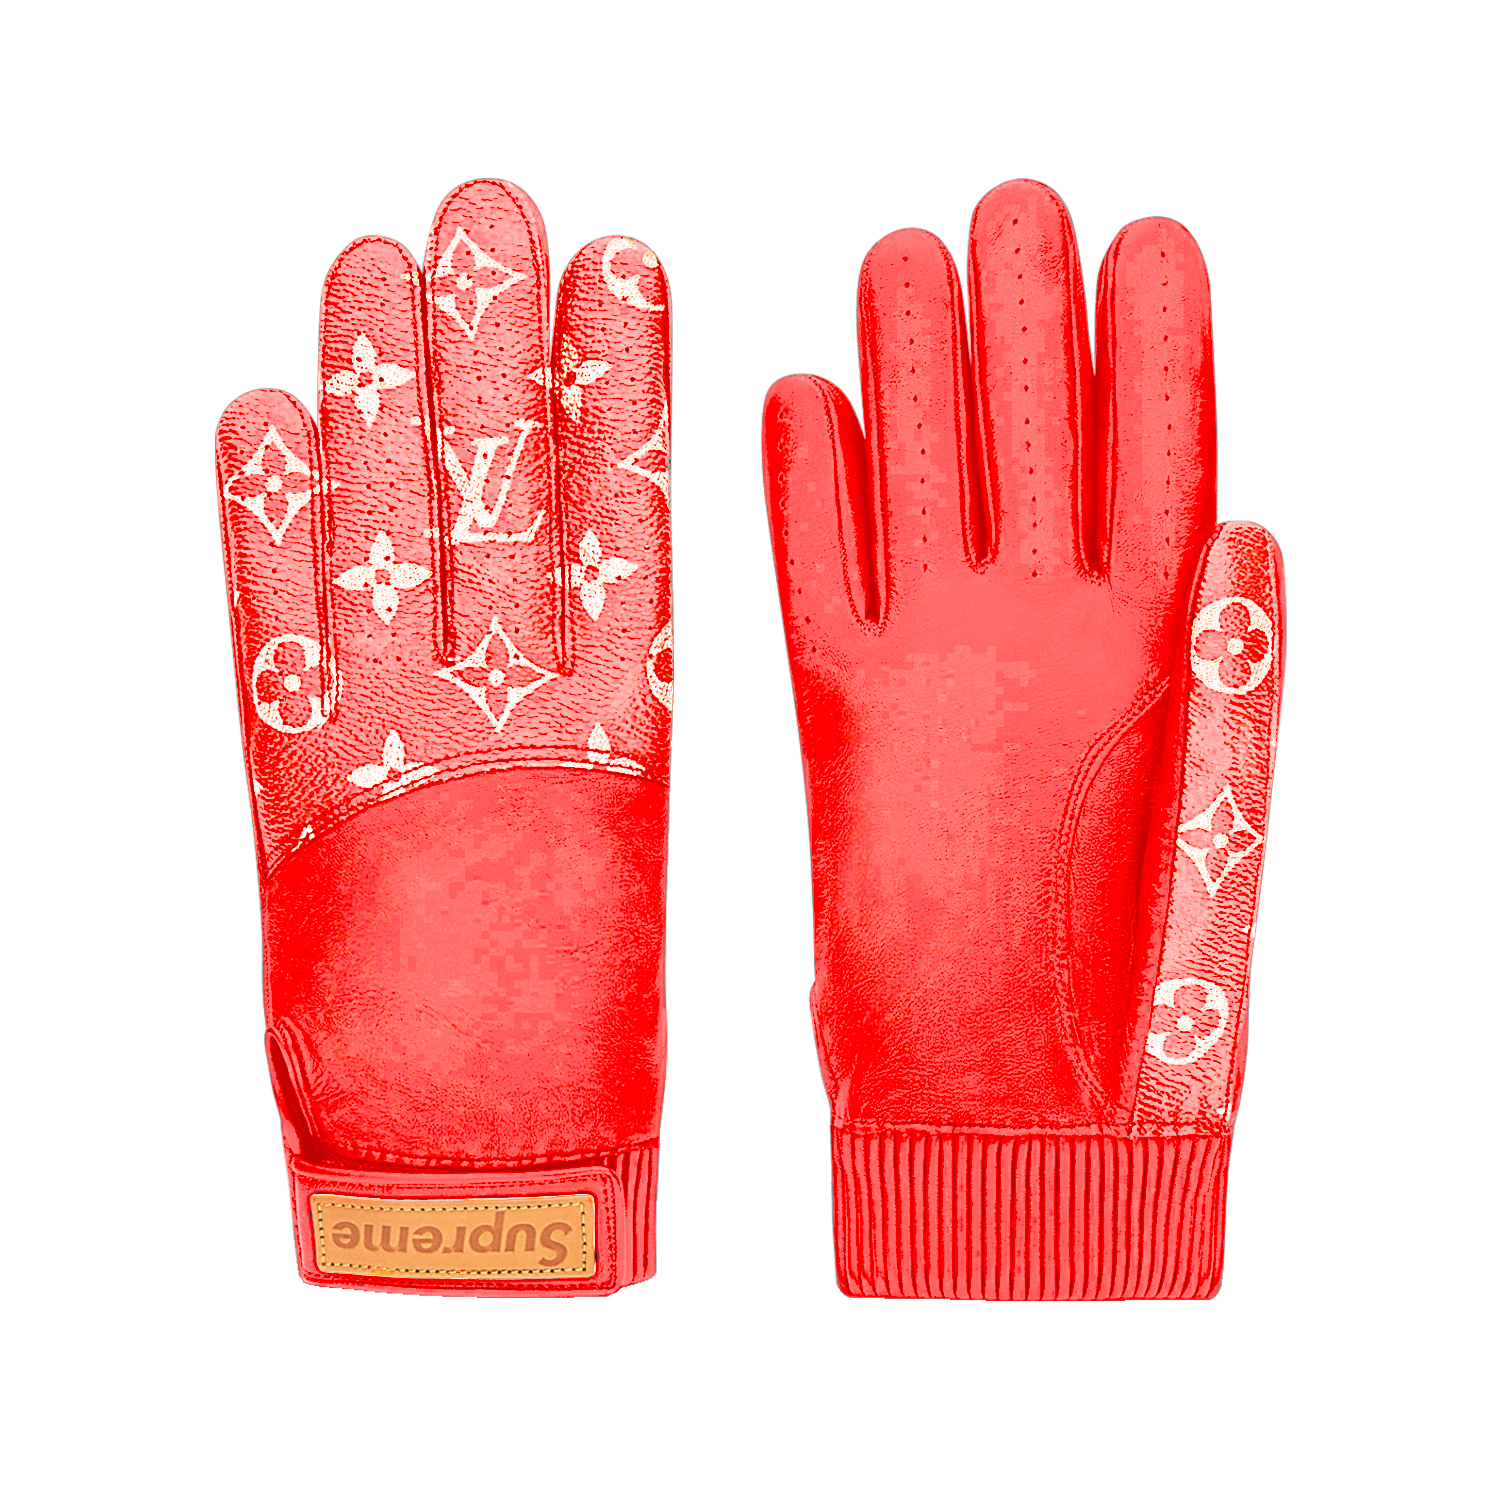 SUPREME BASEBALL GLOVES  - €595 $875MP1892MONOGRAM RED